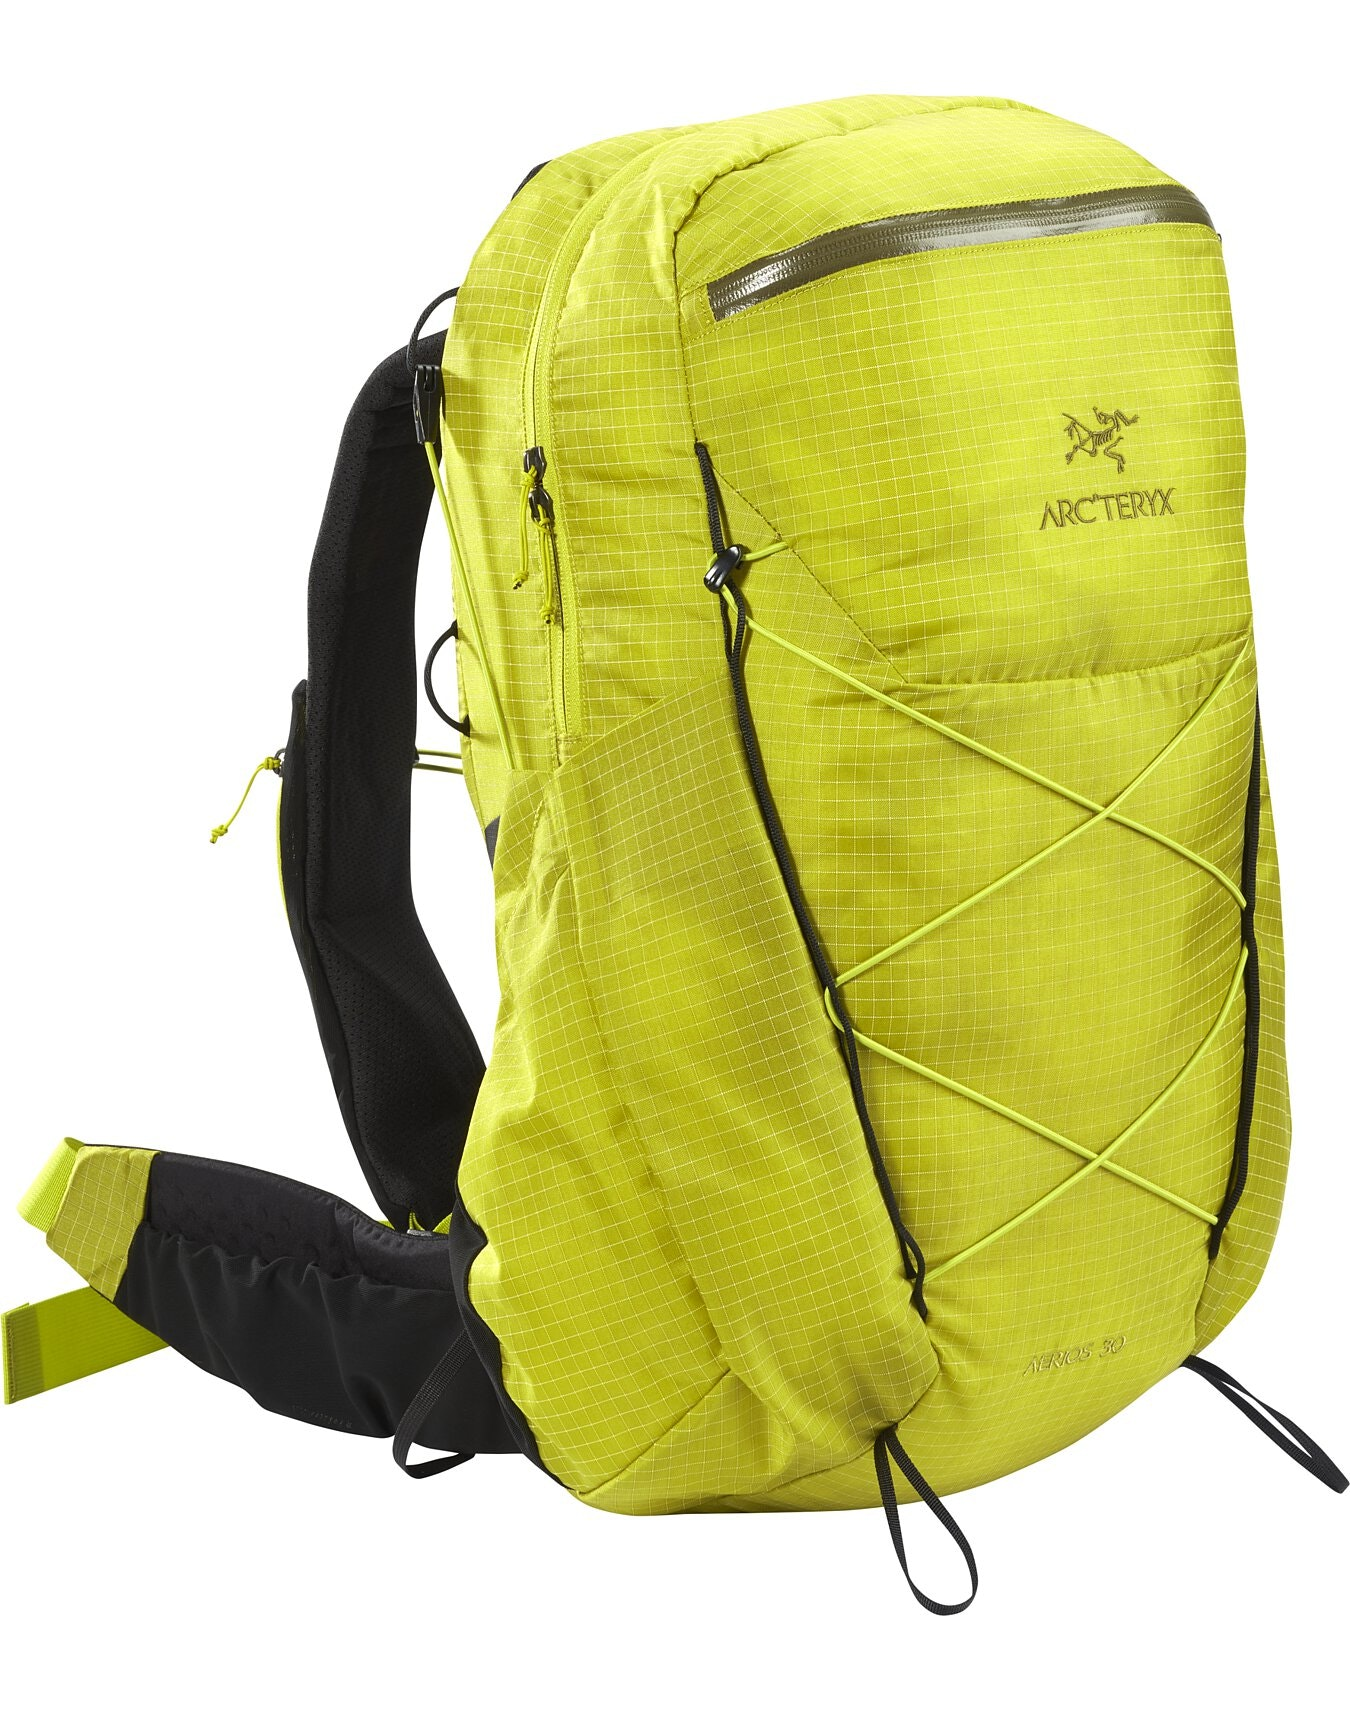 Aerios 30 Backpack Glade